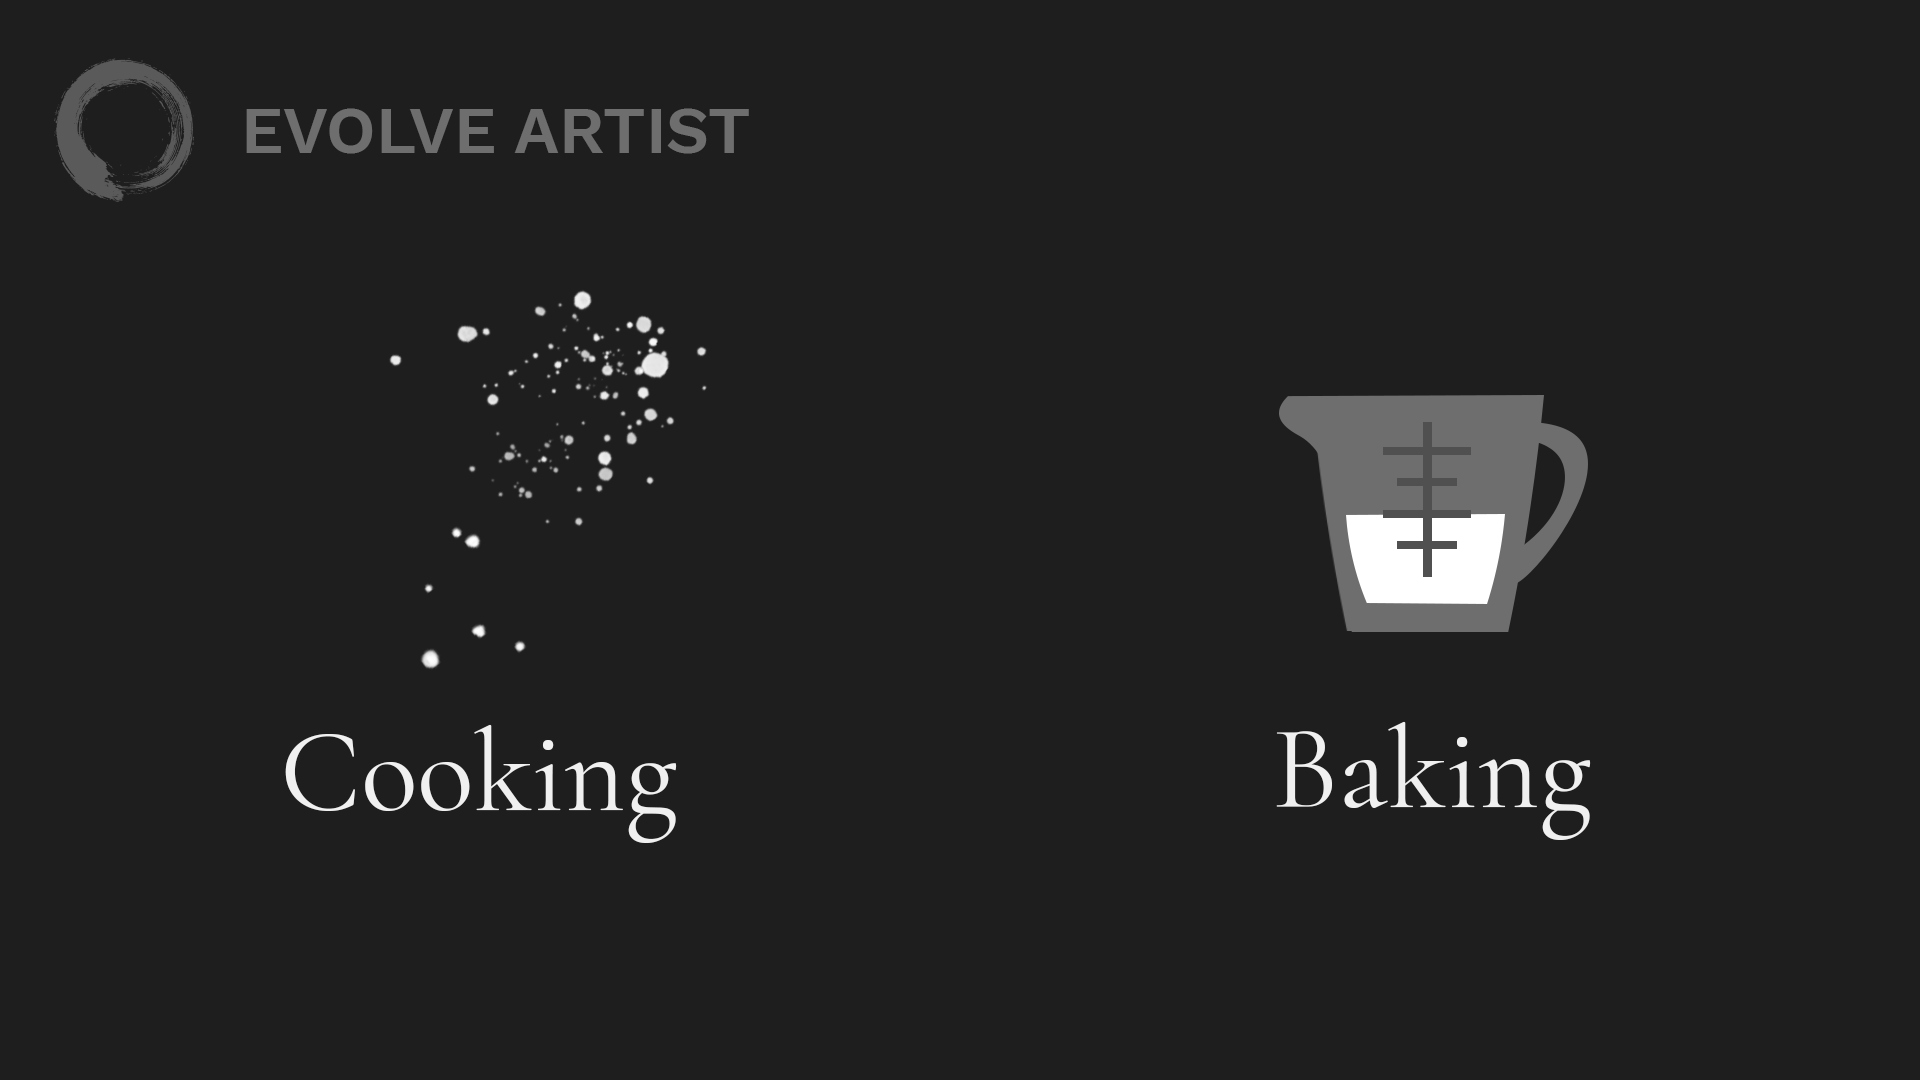 Proportional drawing is precise like baking